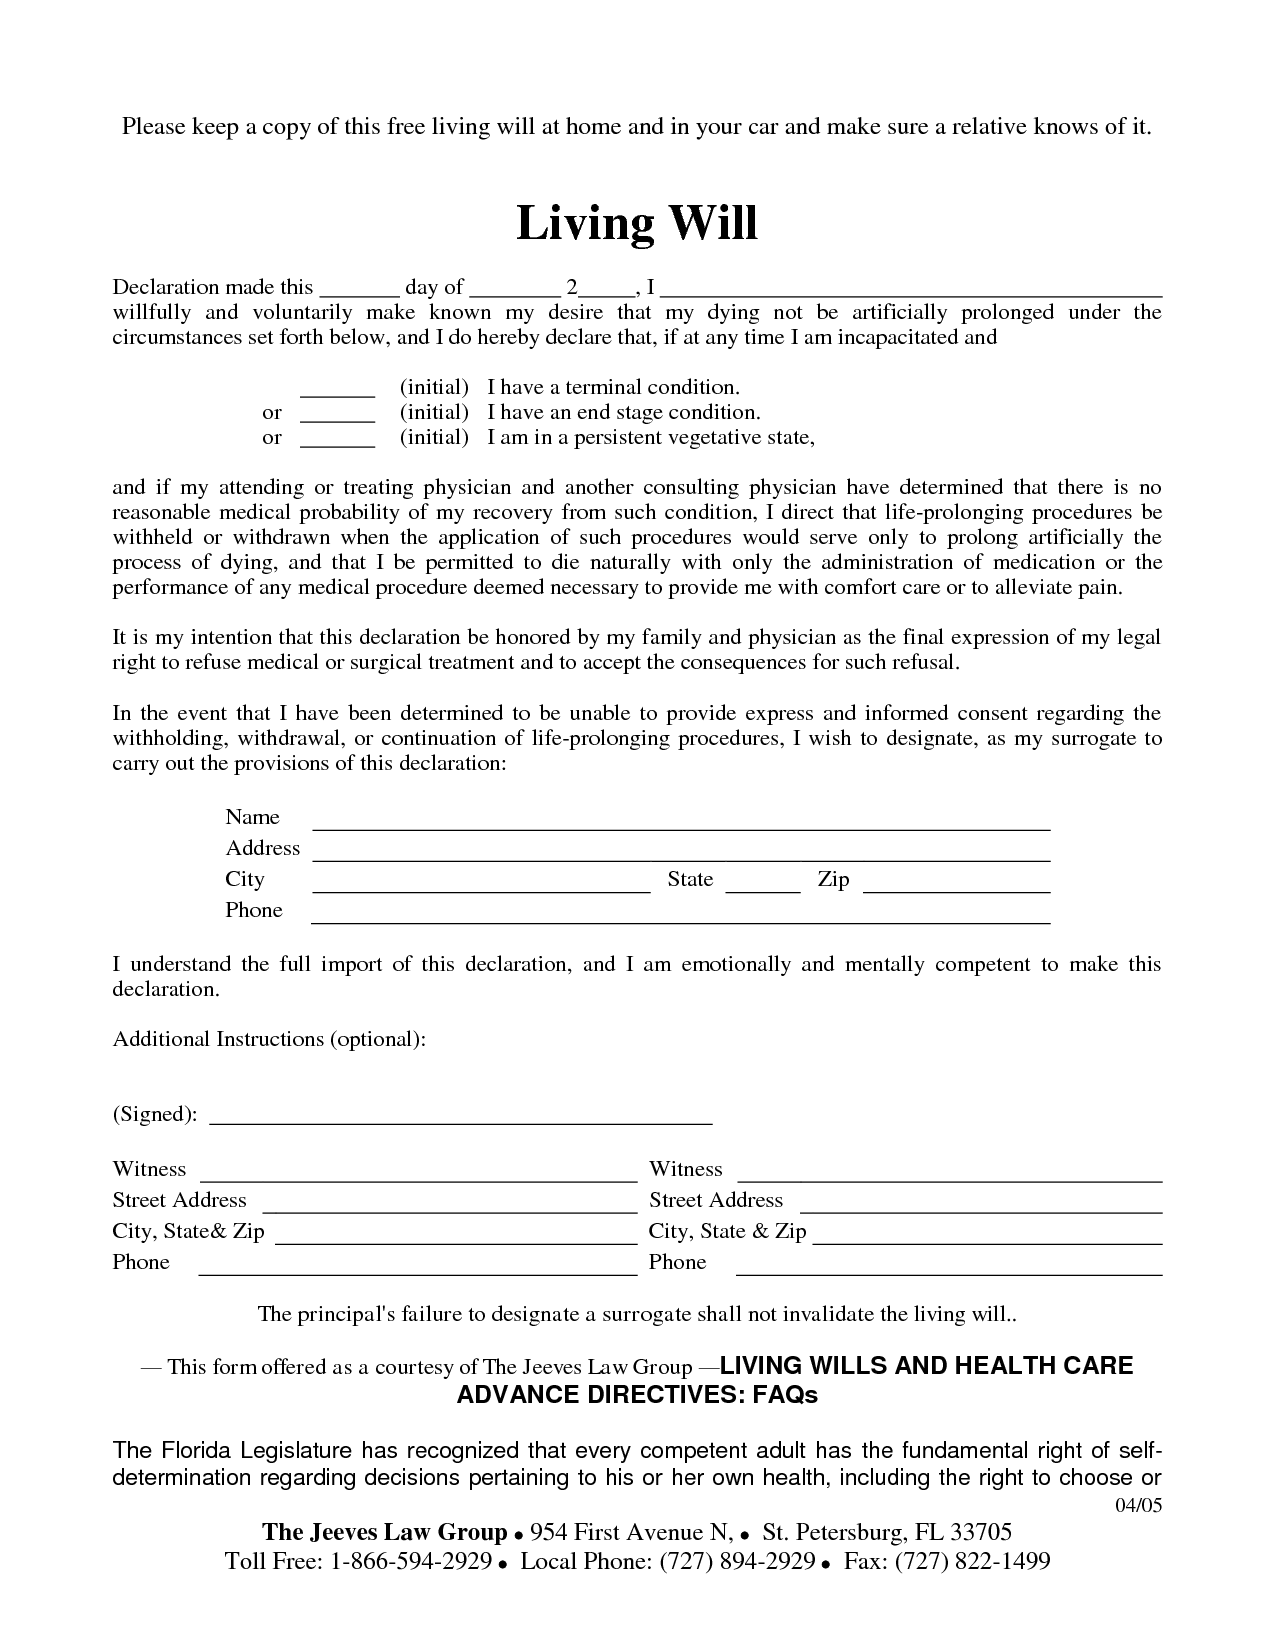 Free Copy Of Living Will By Richard Cataman